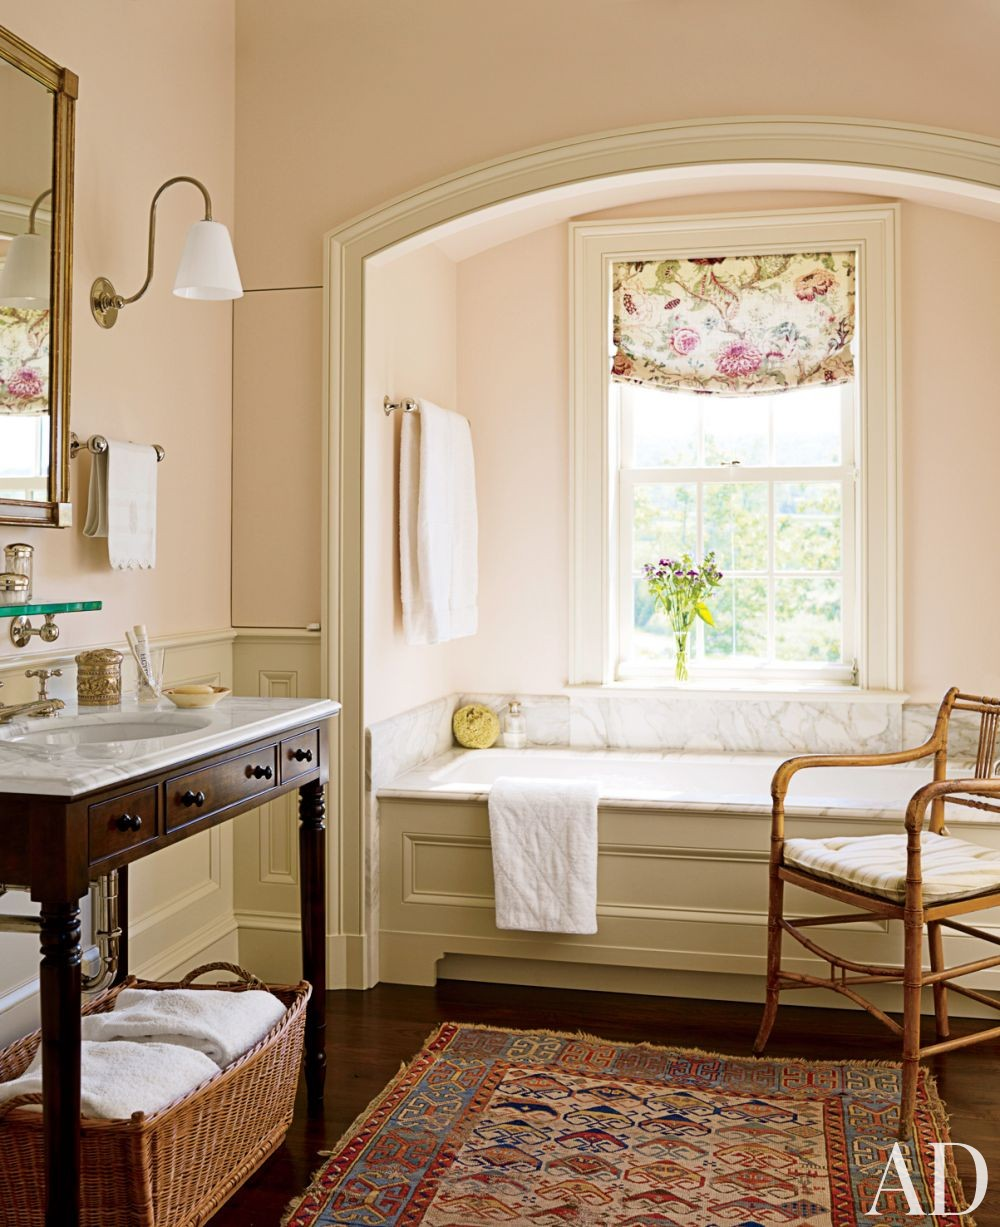 Traditional Bathroom by G. P. Schafer Architect in Dutchess County, New York